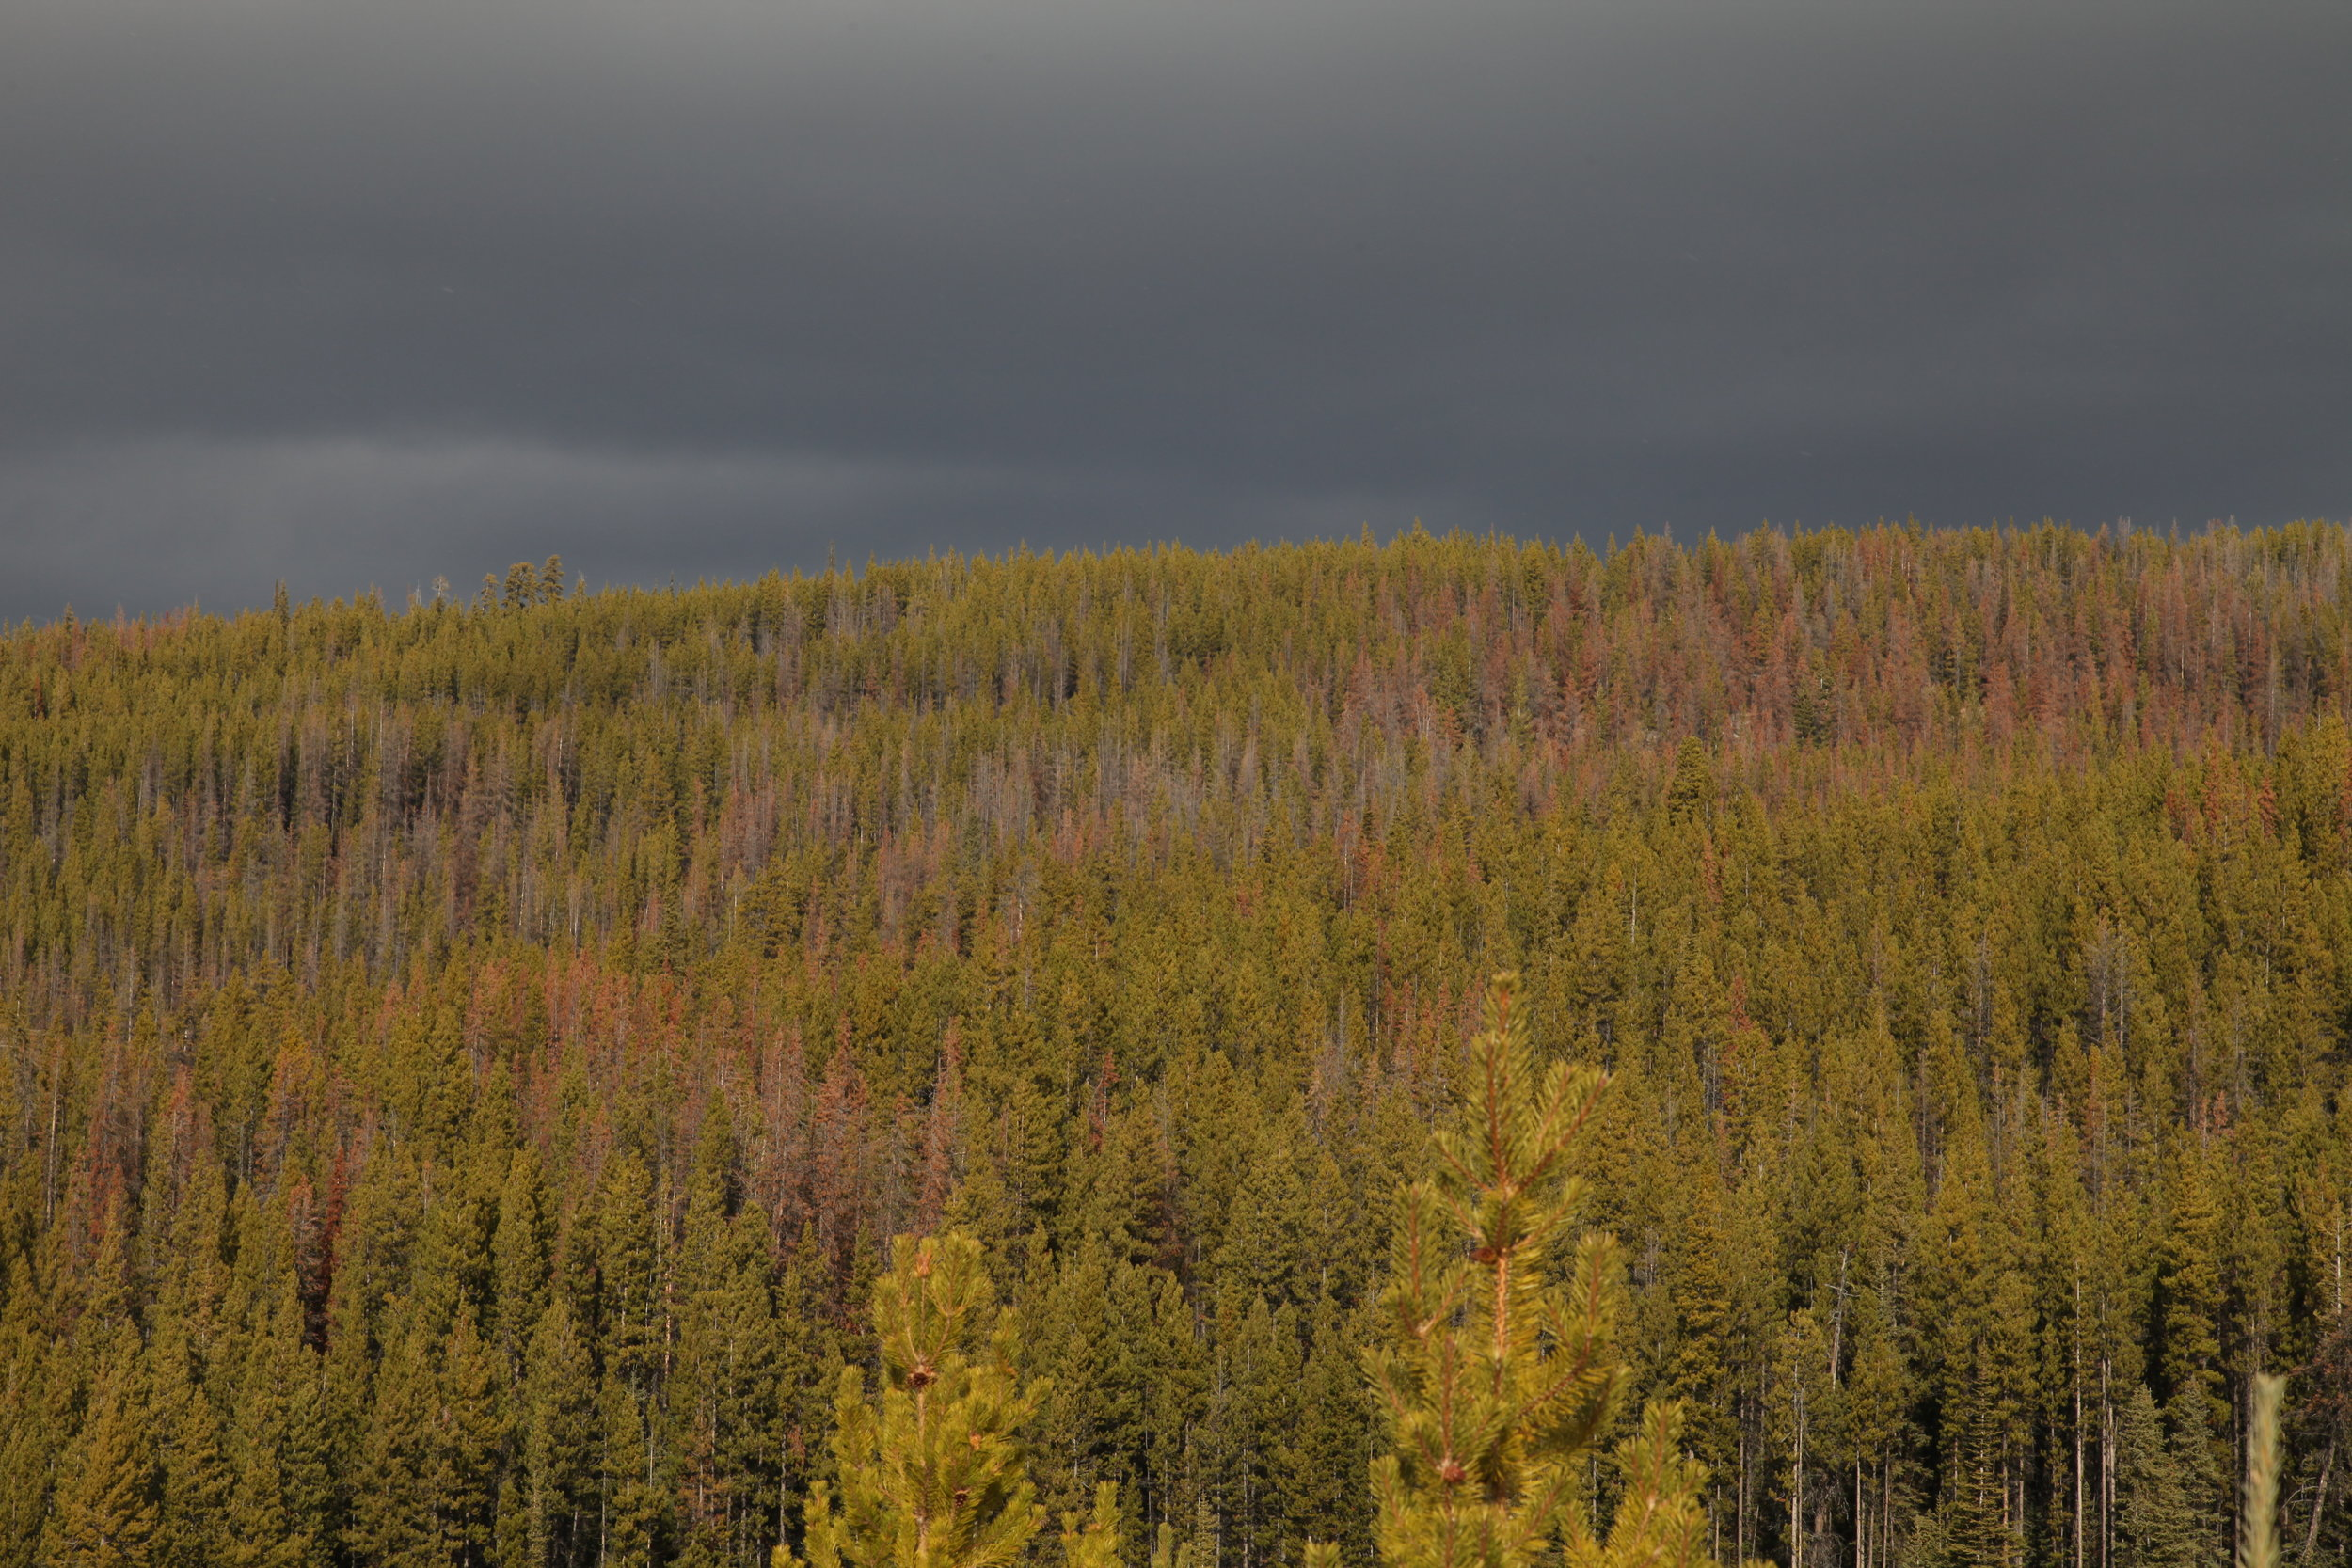 The Mountain Pine Beetle is one form of natural disturbance present in the Sallus Creek watershed. We are continuing to work to restore the resilience of Xaxli'p forests to natural disturbances.